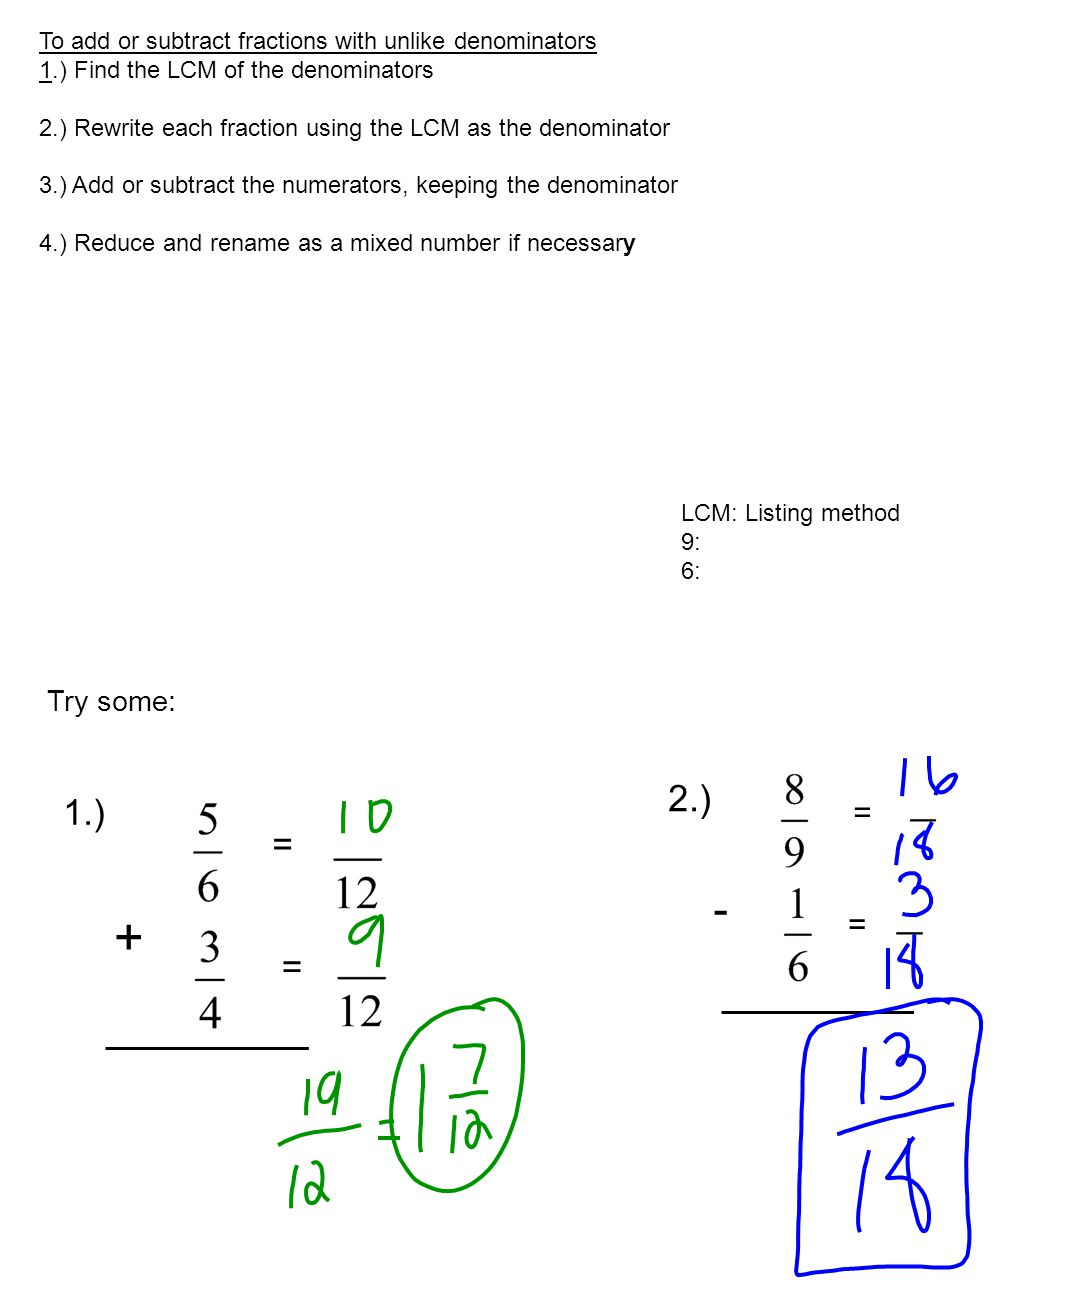 Worksheet Adding And Subtracting With Unlike Denominators – Adding and Subtracting Unlike Denominators Worksheet